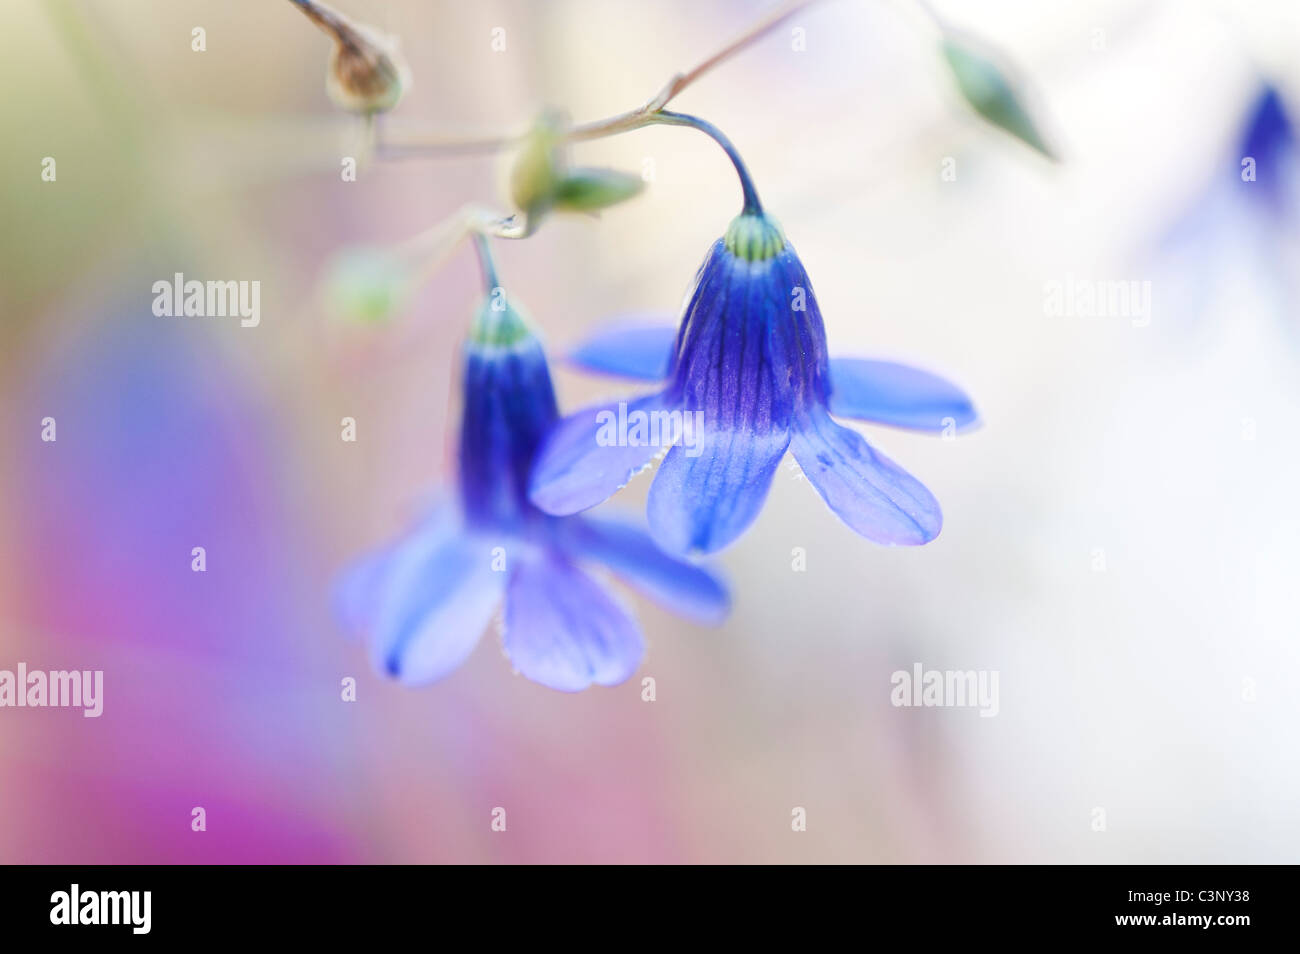 Conanthera Campanulata. Chilean wildflower - Stock Image